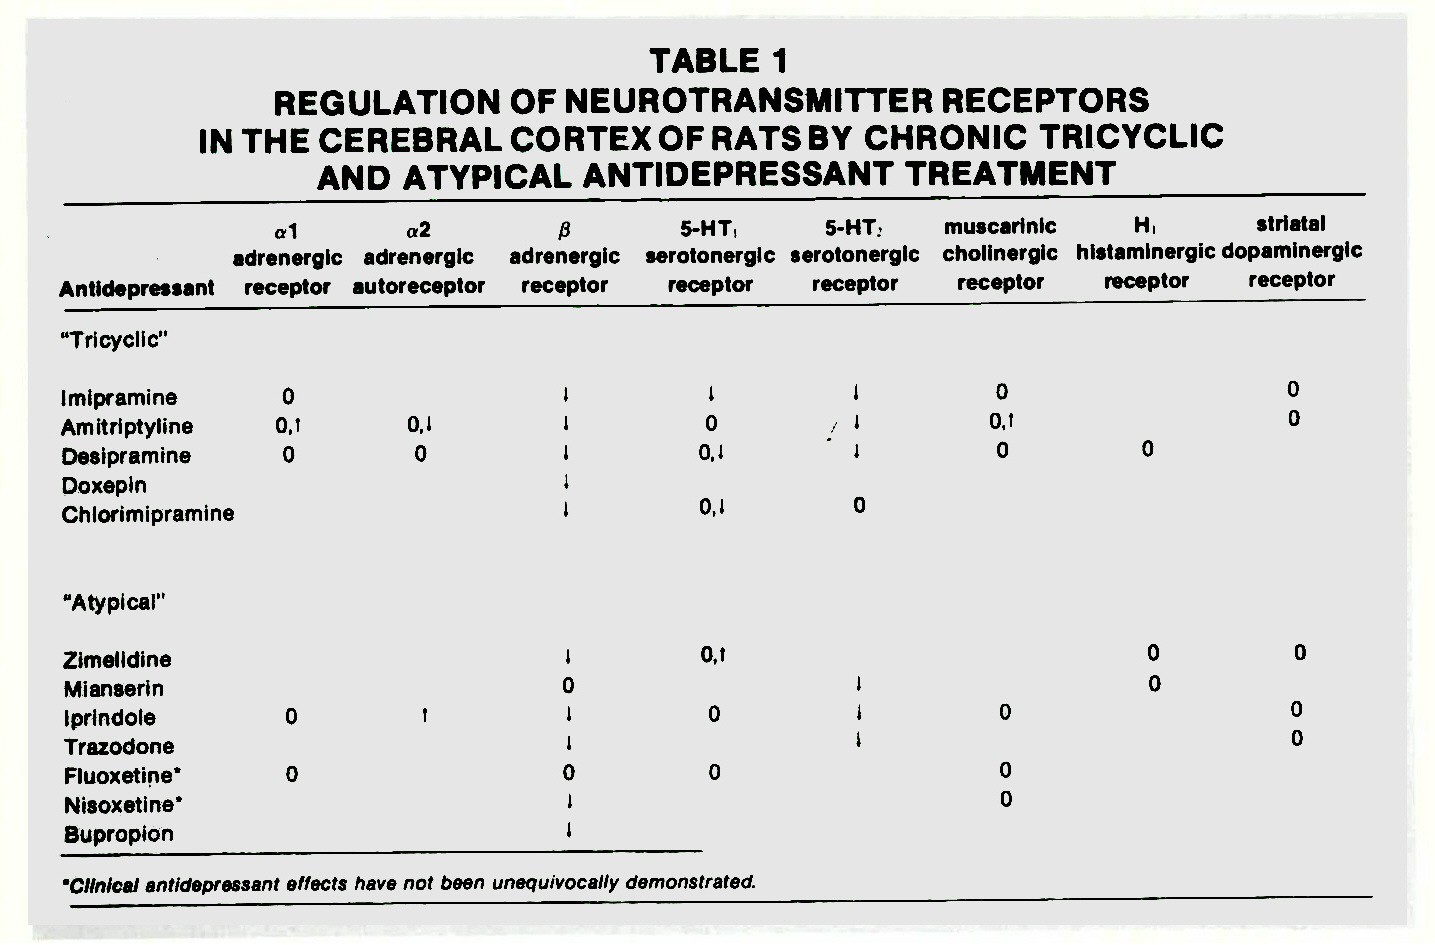 TABLE 1REGULATION OF NEUROTRANSMITTER RECEPTORS IN THE CEREBRAL CORTEX OF RATS BY CHRONIC TRICYCLIC AND ATYPICAL ANTIDEPRESSANT TREATMENT